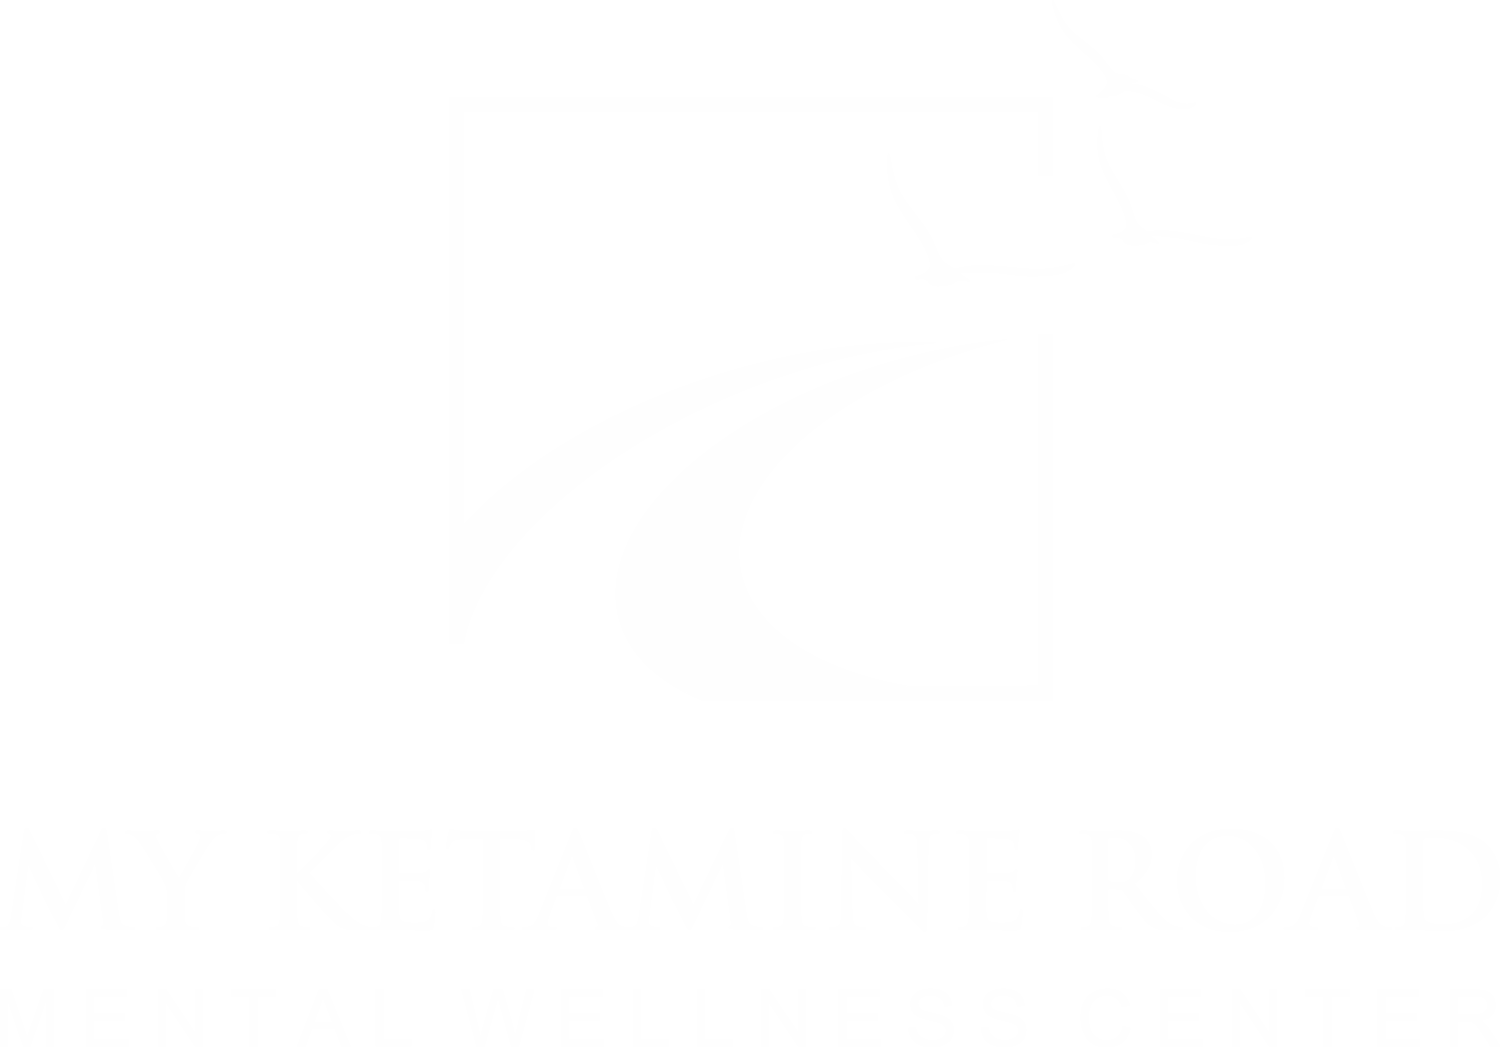 Welcome to My Ketamine Road